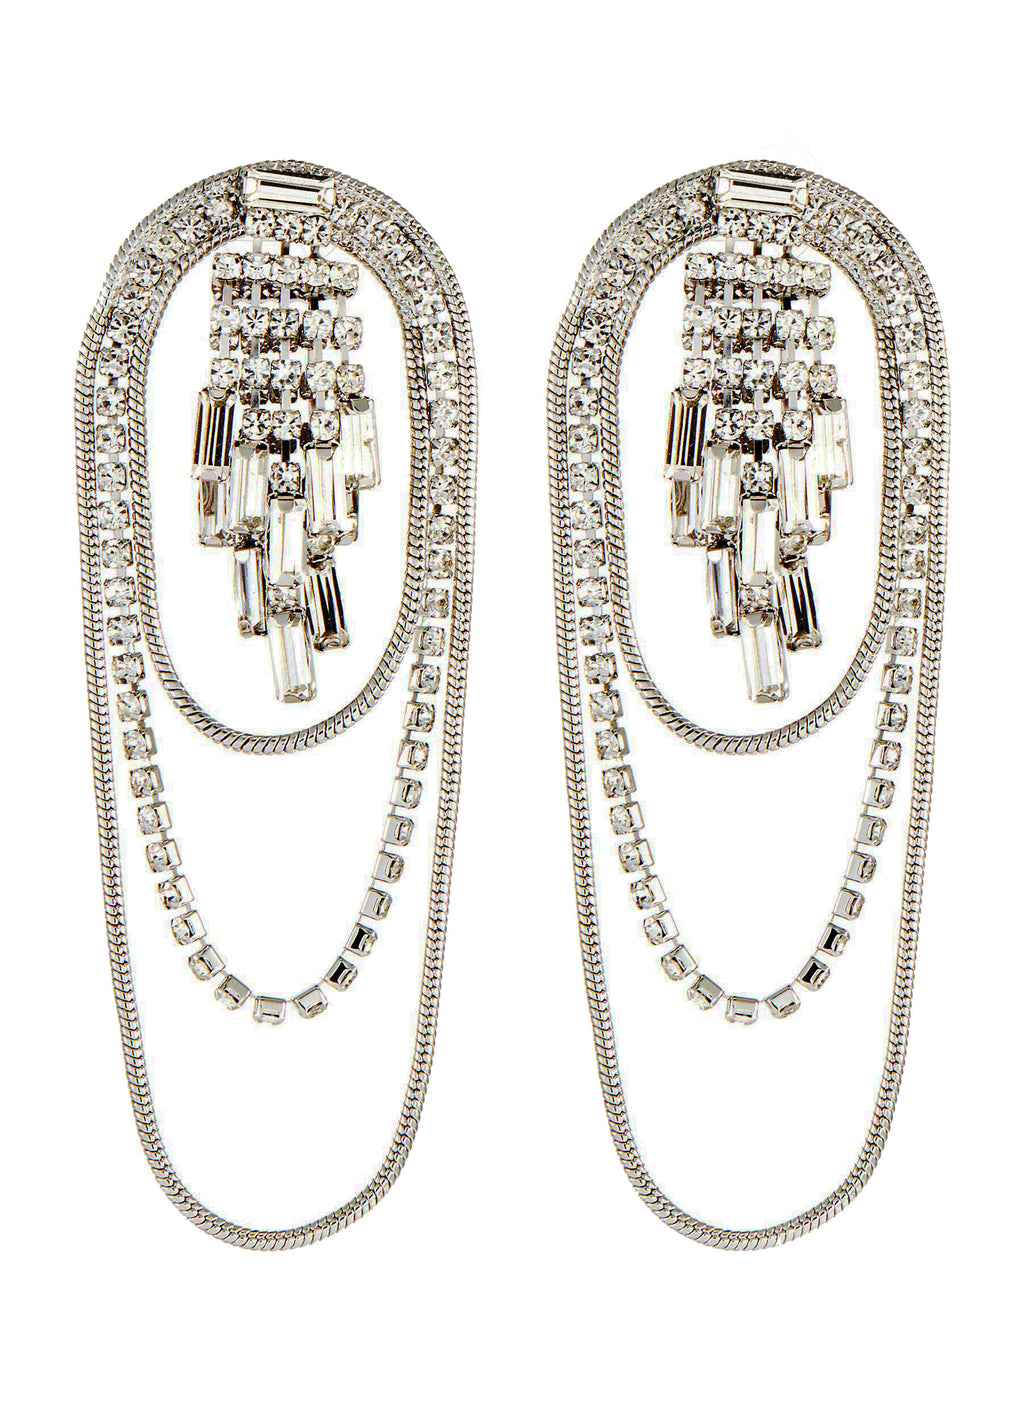 CRYSTAL FRINGE LAYERED DROP EARRINGS